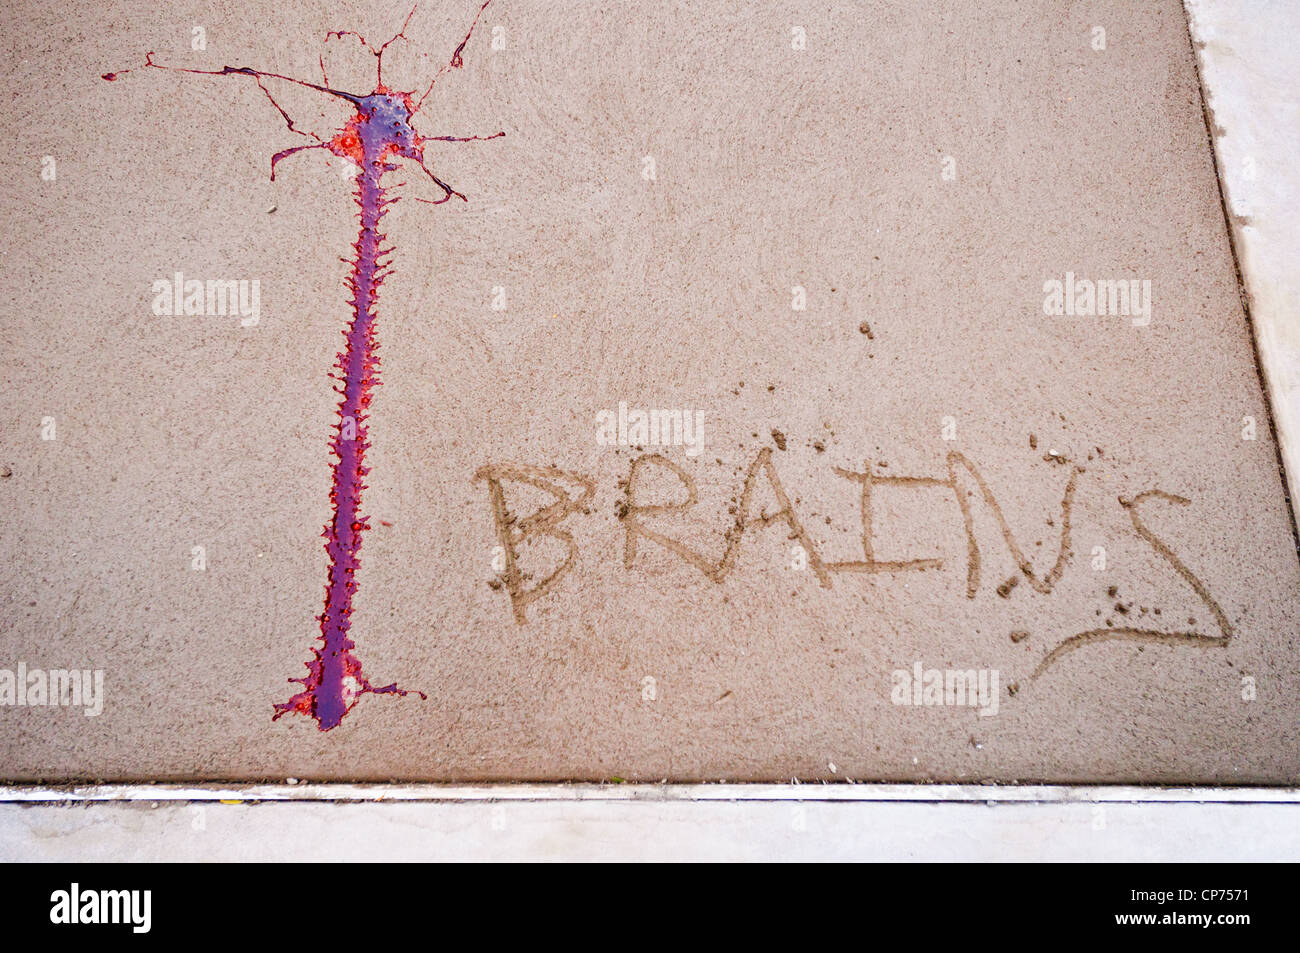 'Brains' and a streak of fake blood appear on wet concrete. Part of a Zombie Crawl in New York City. - Stock Image